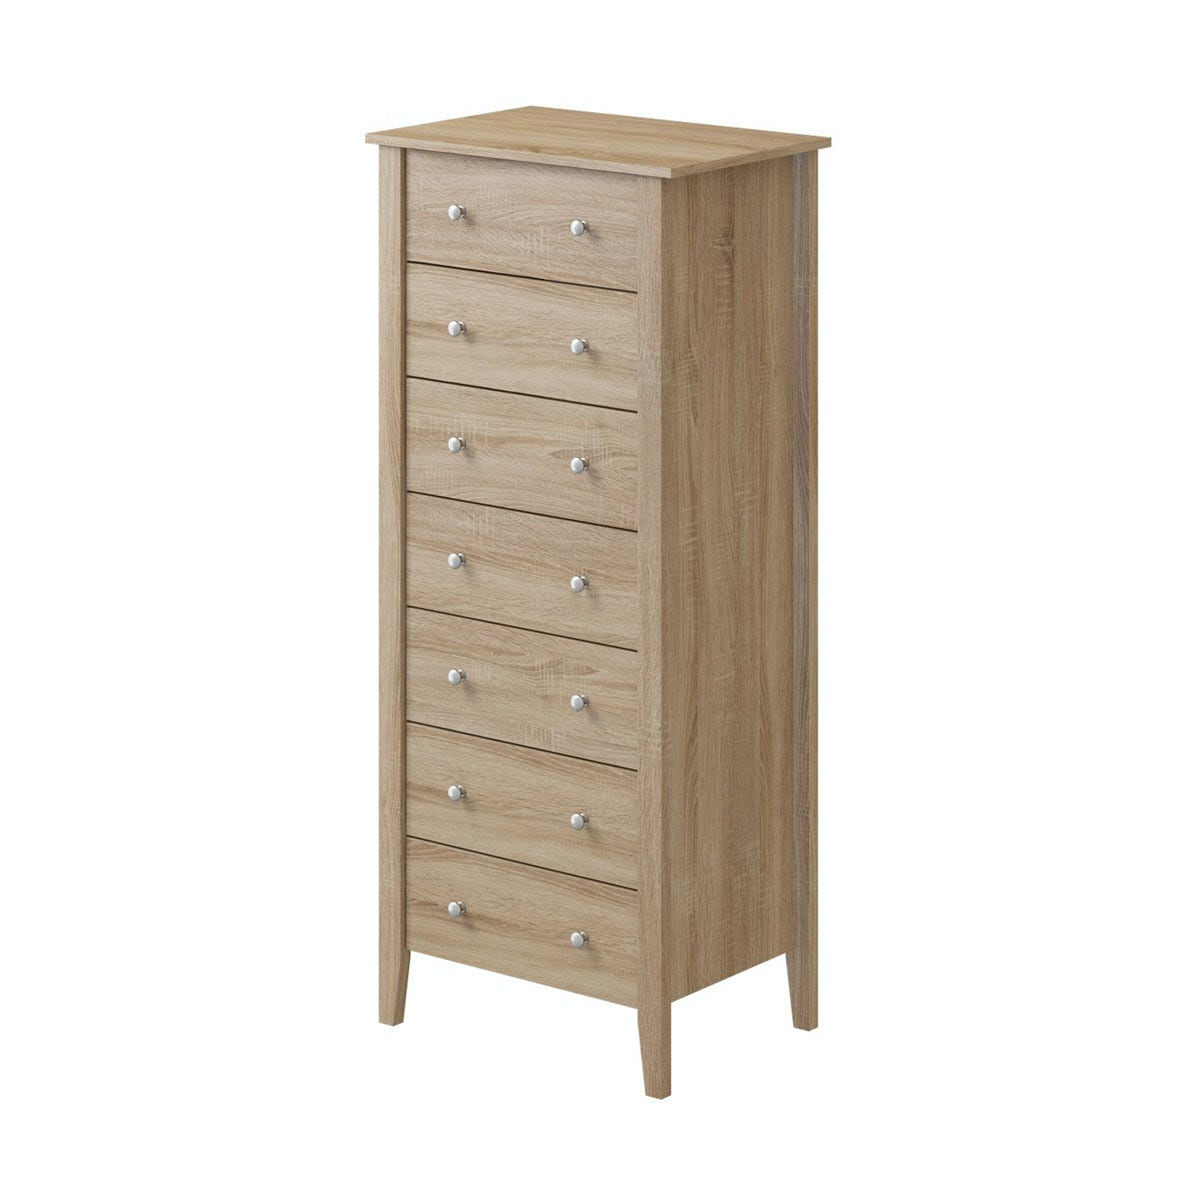 Priced To Clear Sydney Oak 7 Drawer Tall Chest